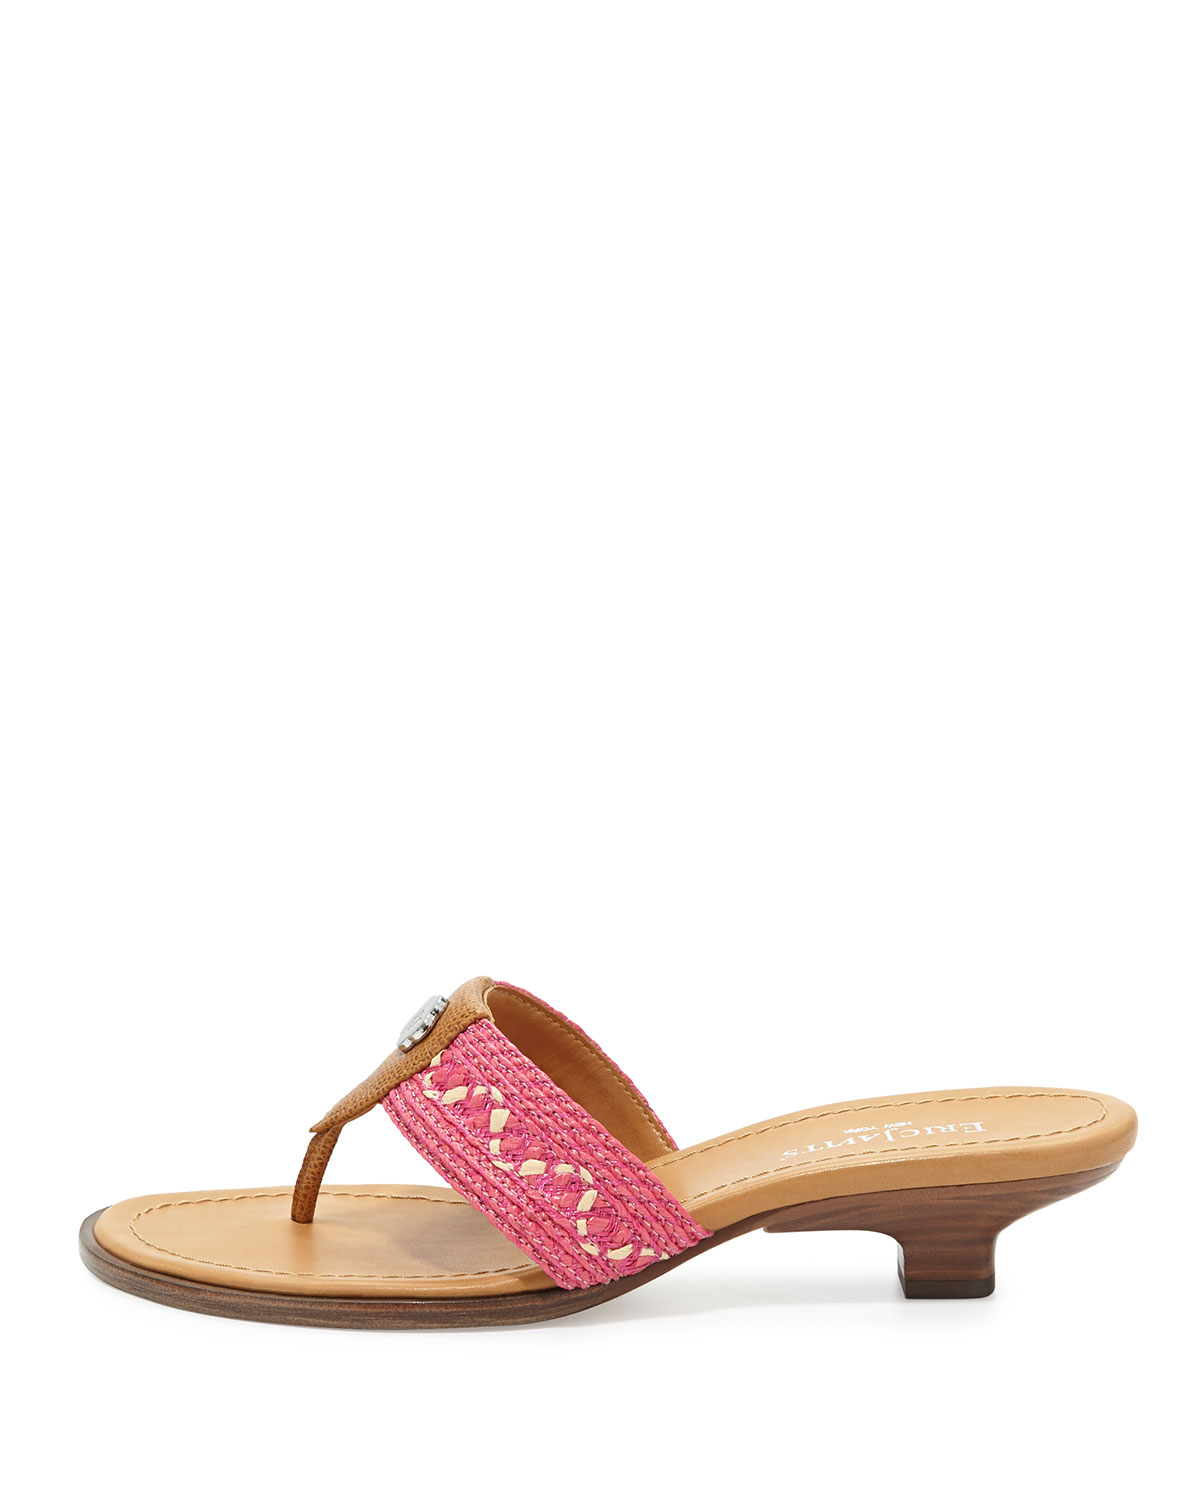 Eric Javits Logo Thong Sandals how much sale online cheap price wholesale price free shipping new free shipping deals 7t5pX